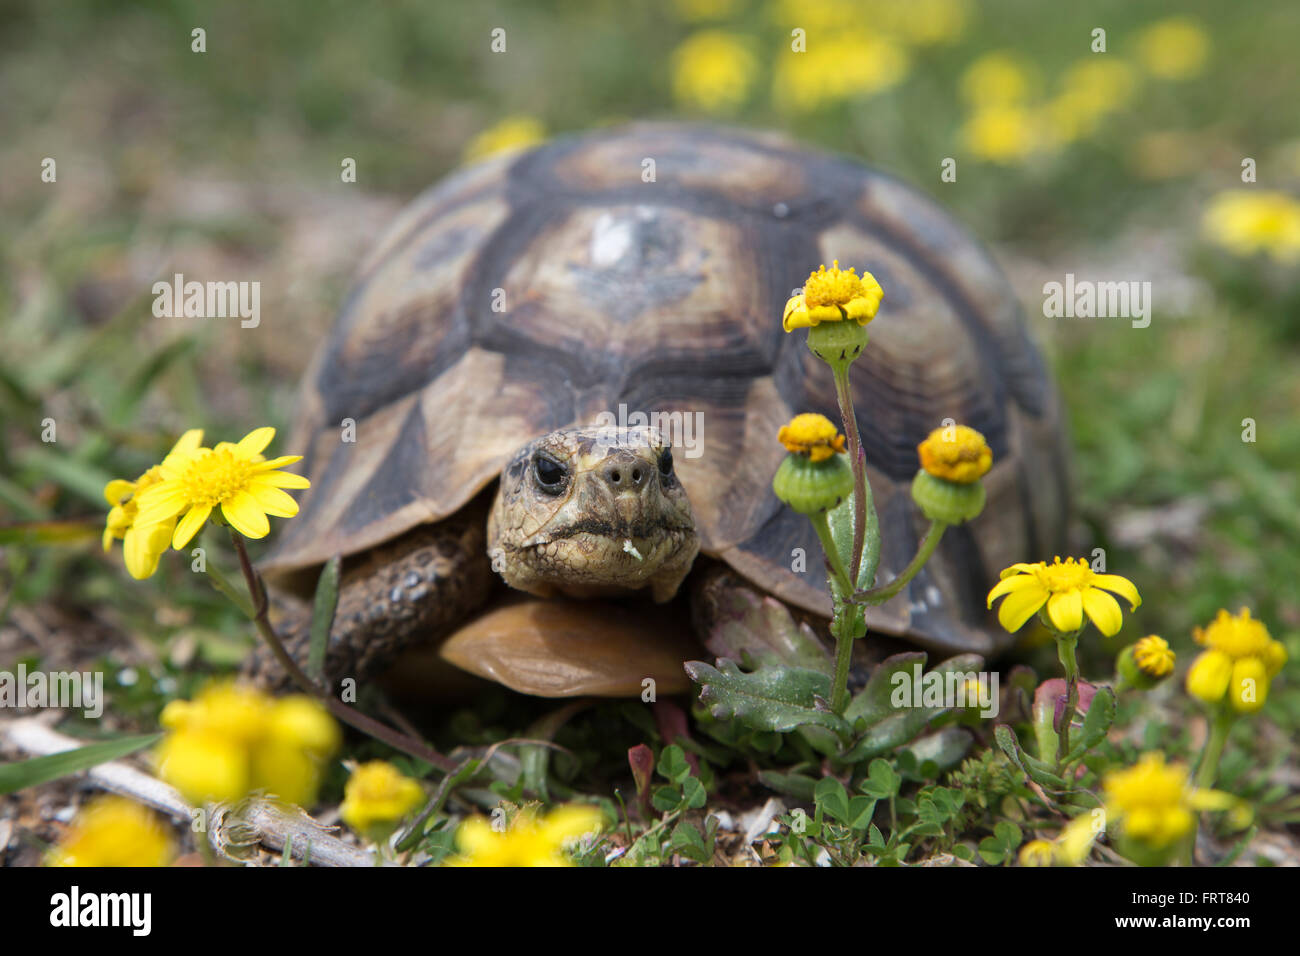 Leopard (mountain) tortoise (Geochelone pardalis), Table Mountain national park, Western Cape, South Africa - Stock Image